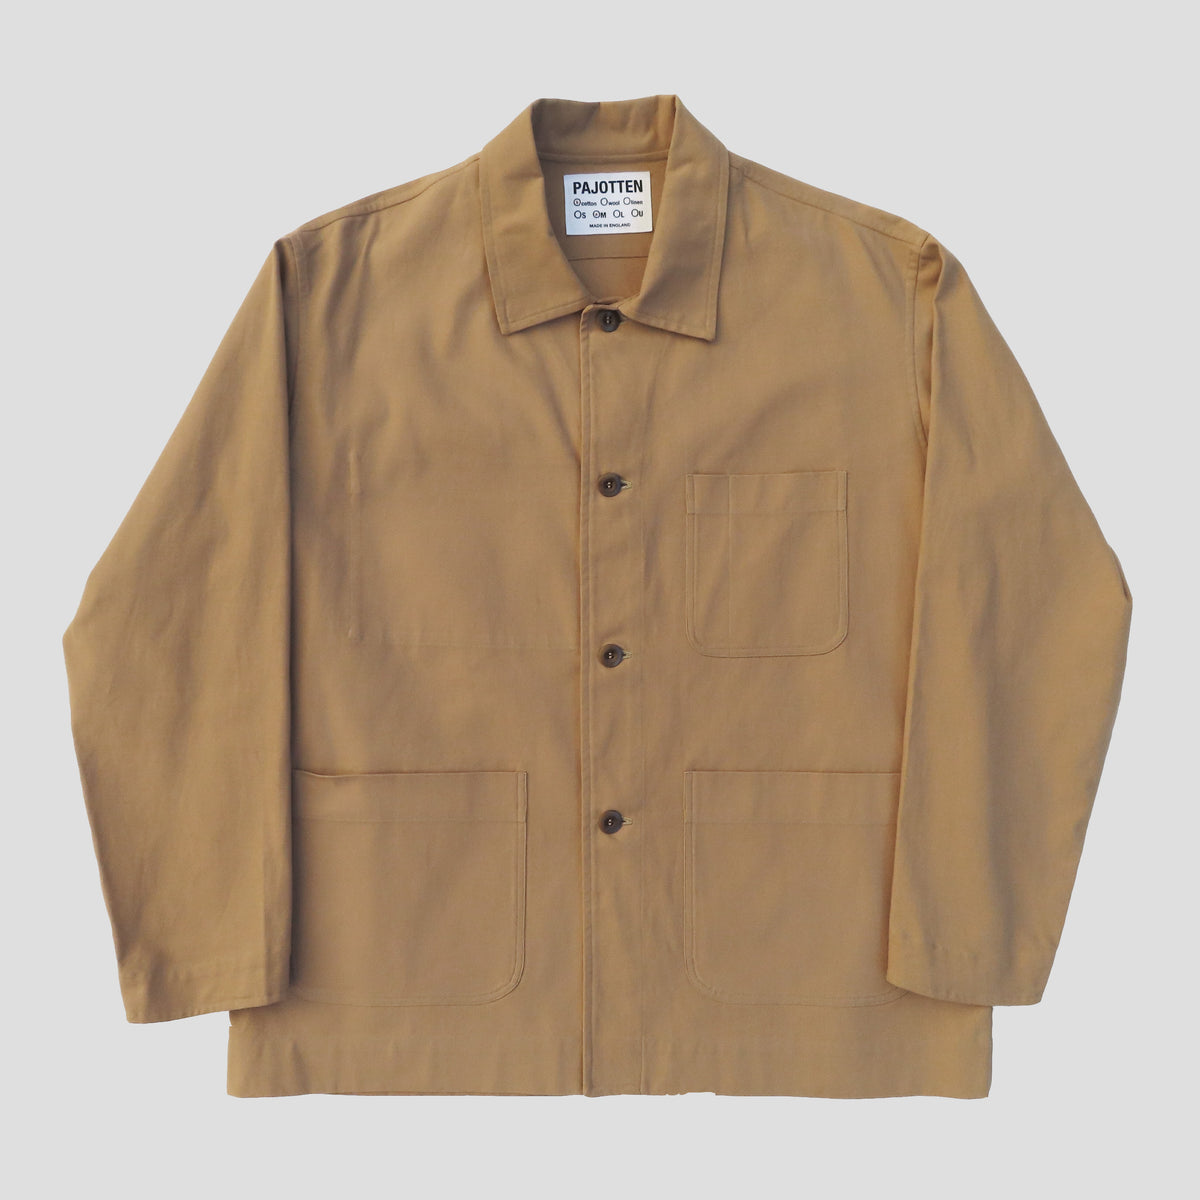 tan coloured chore jacket